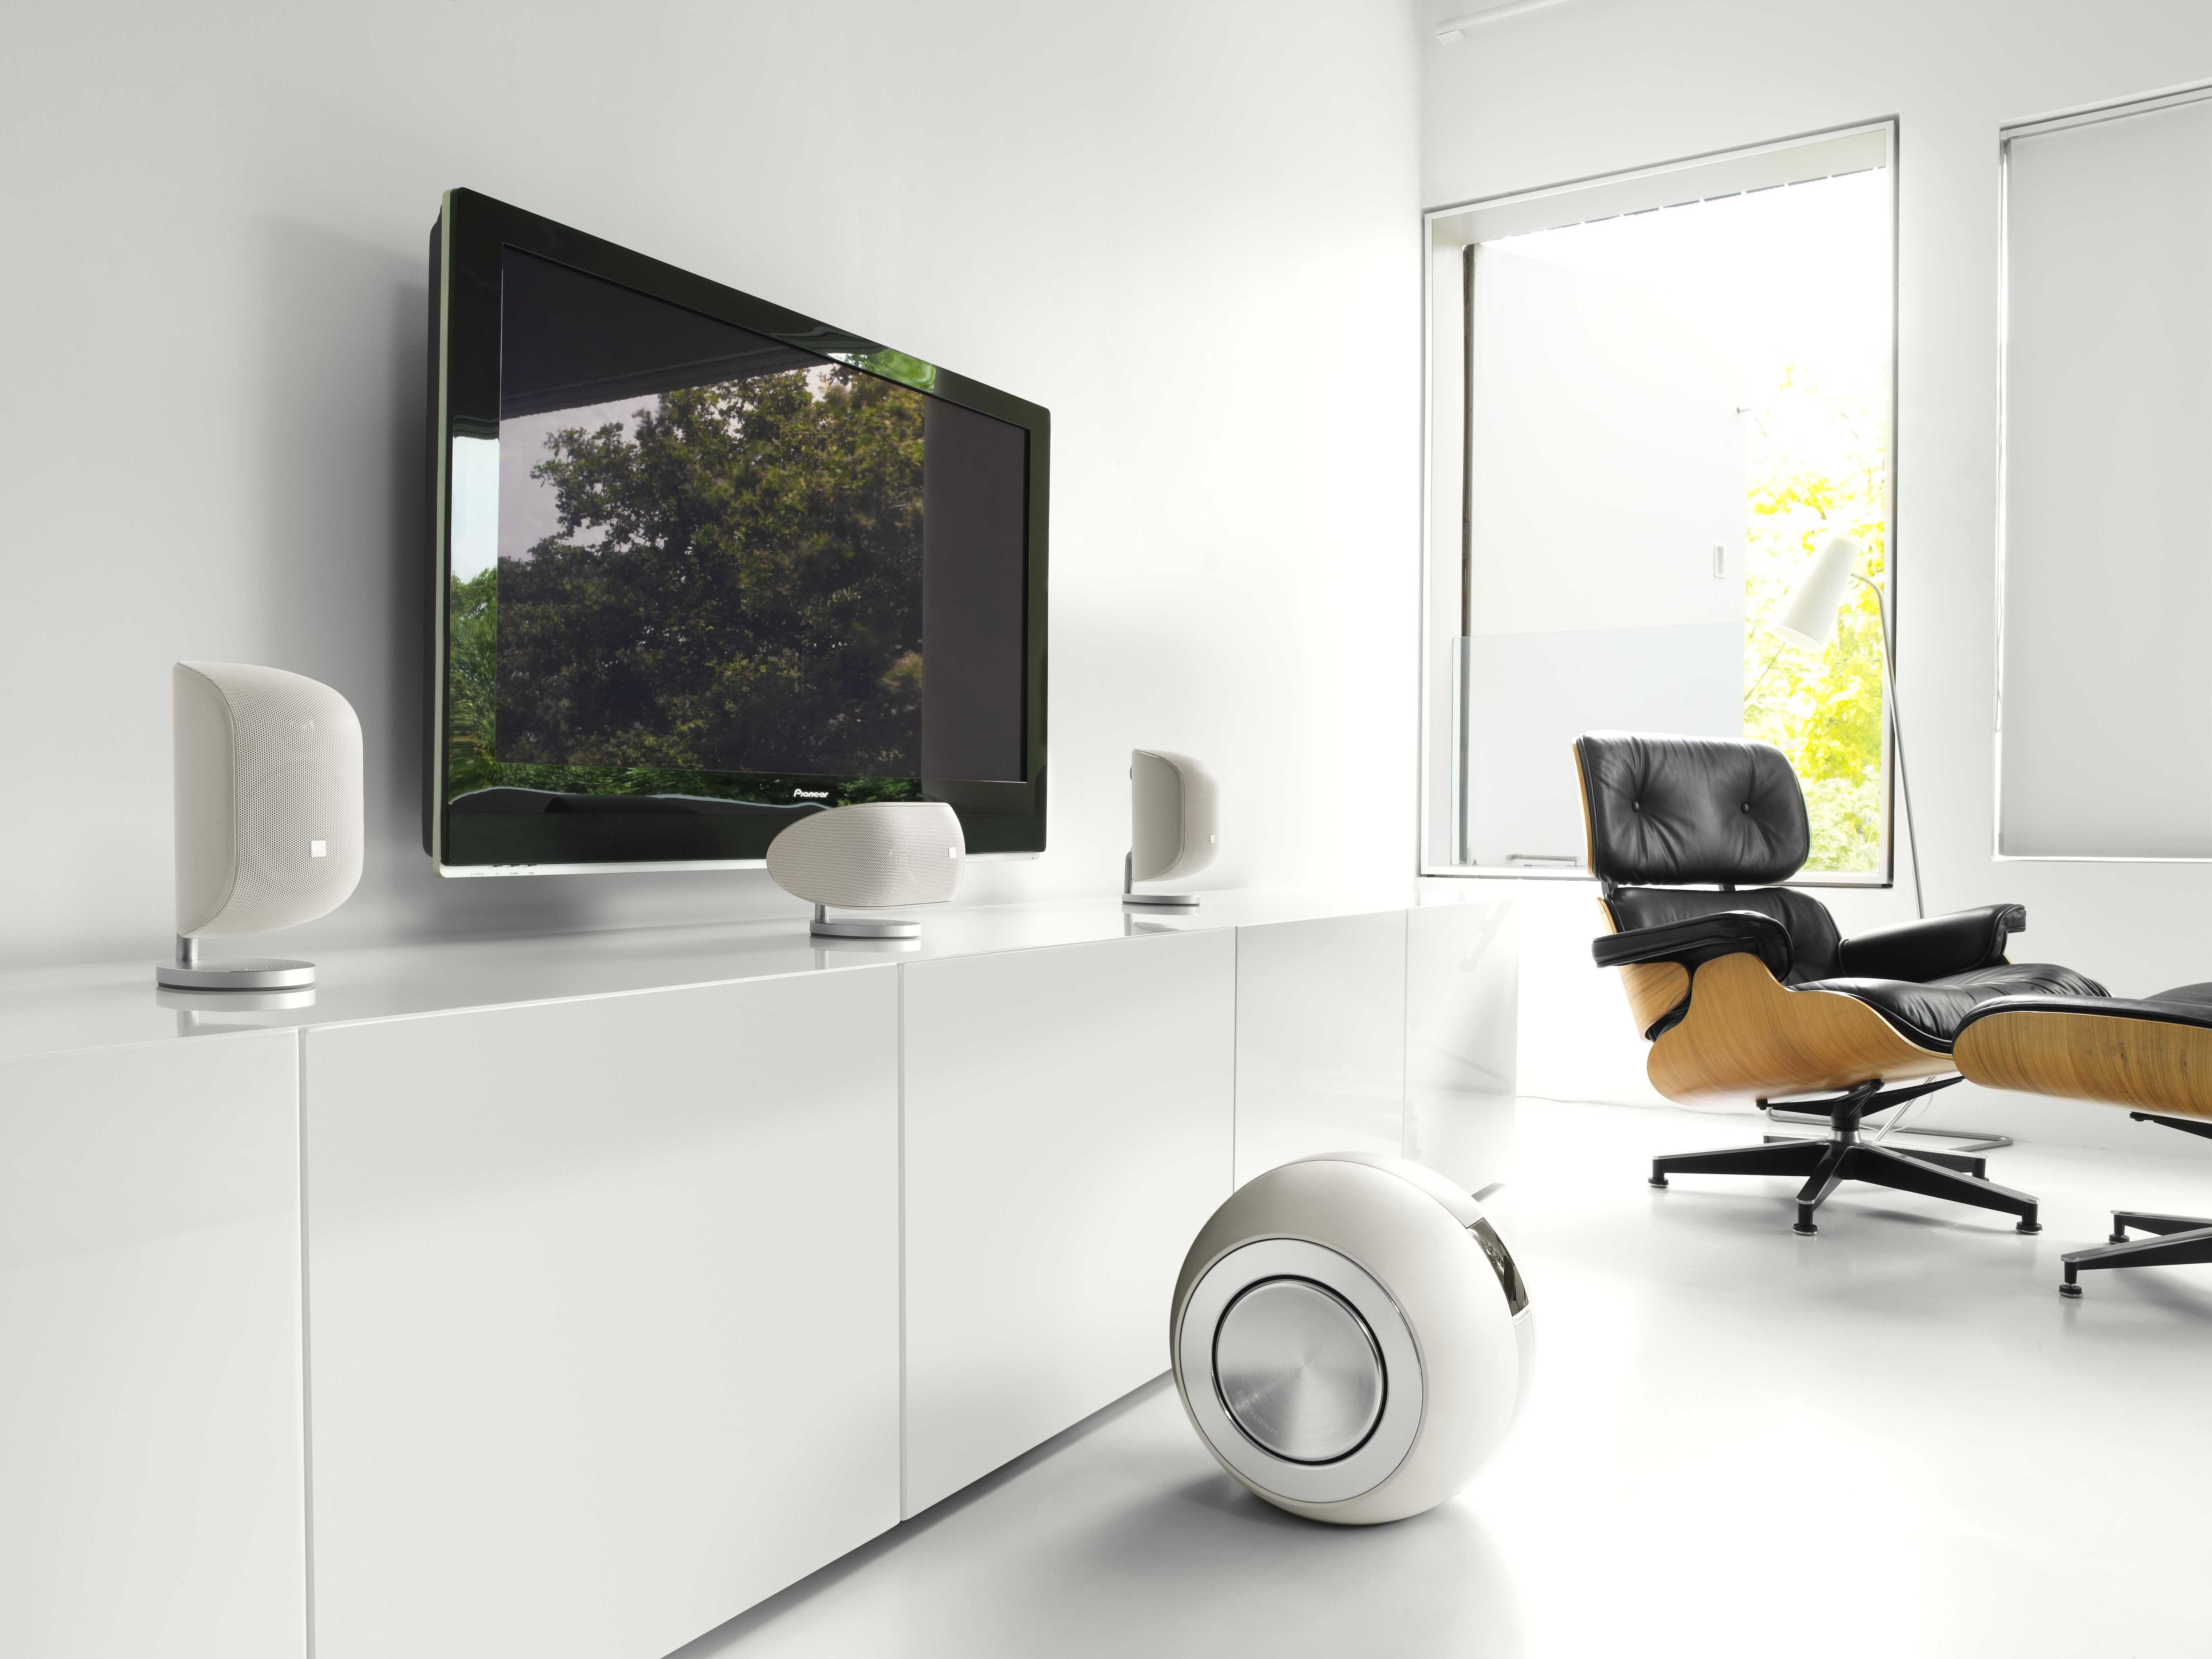 Bowers and Wilkins MT-60D Home Cinema | Home cinema | Pinterest